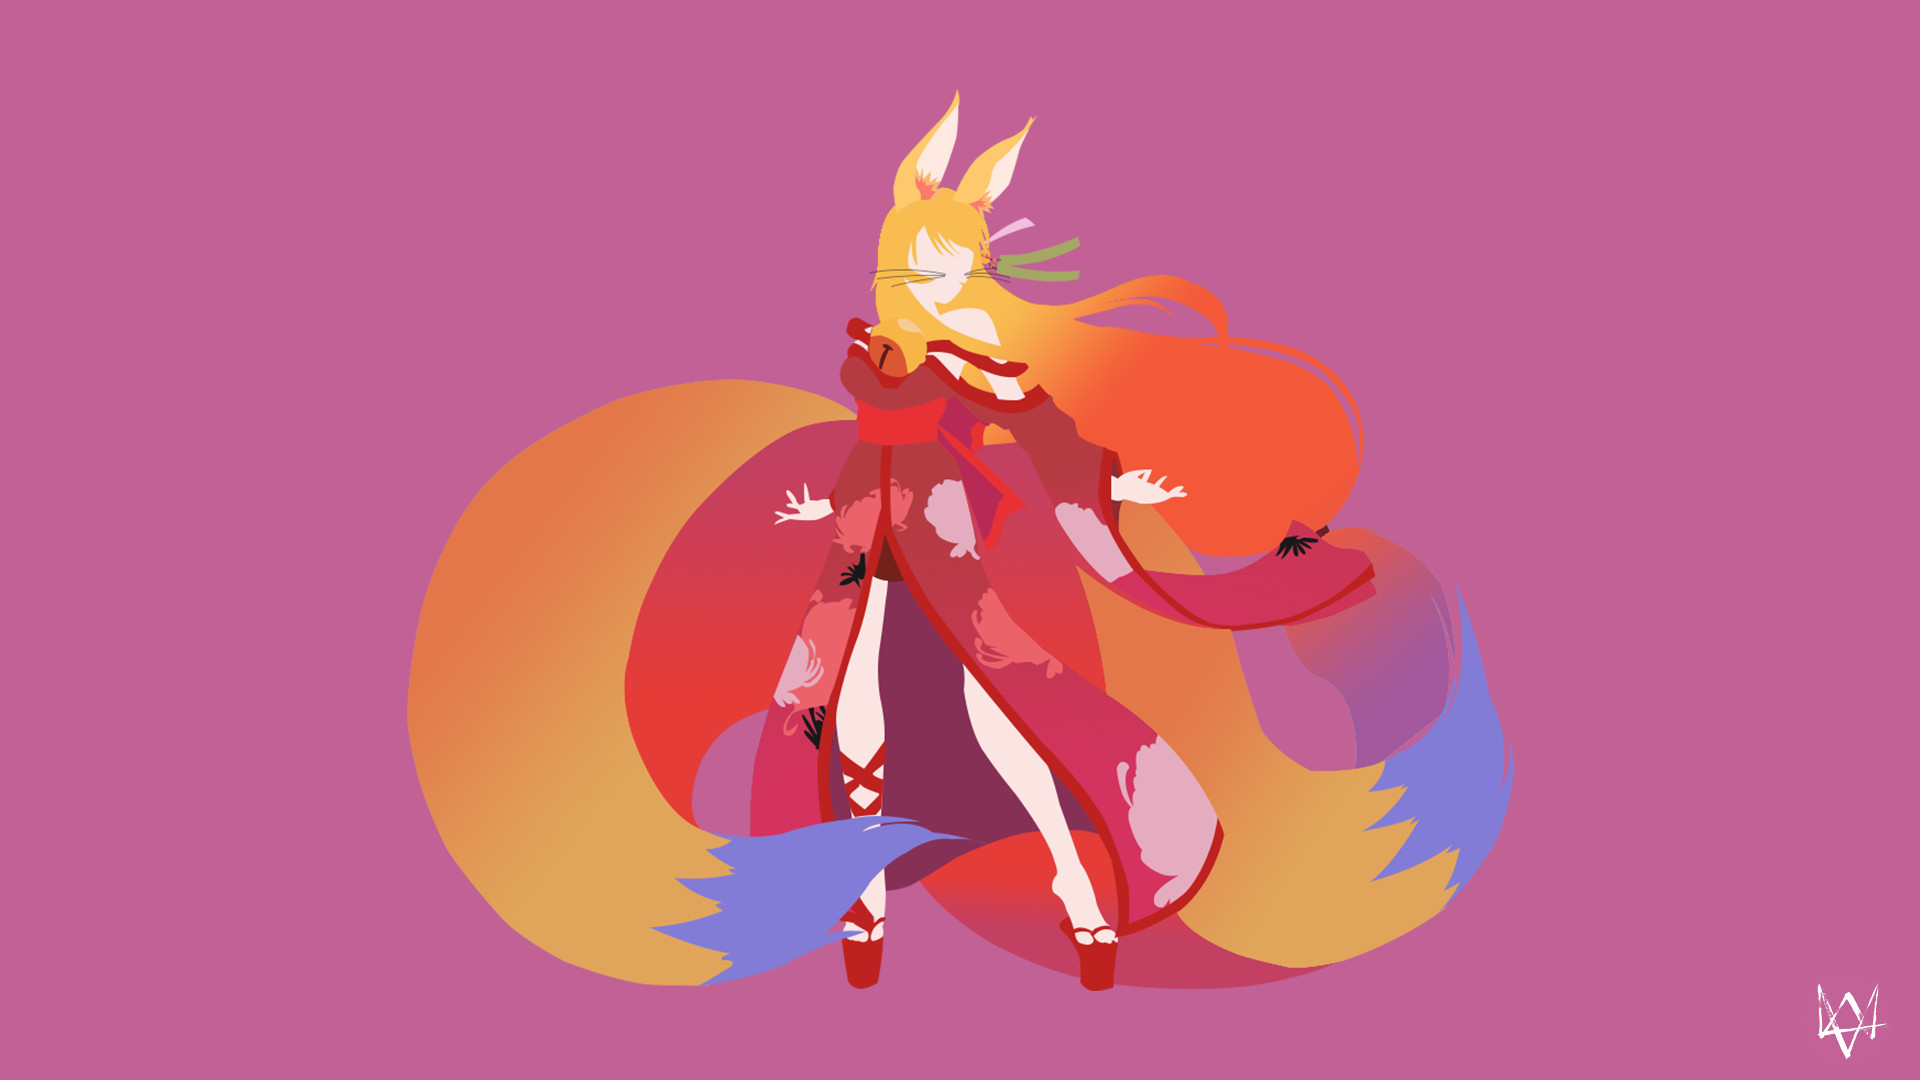 Miko (No Game No Life) Minimalist Anime Wallpaper by Lucifer012 on .